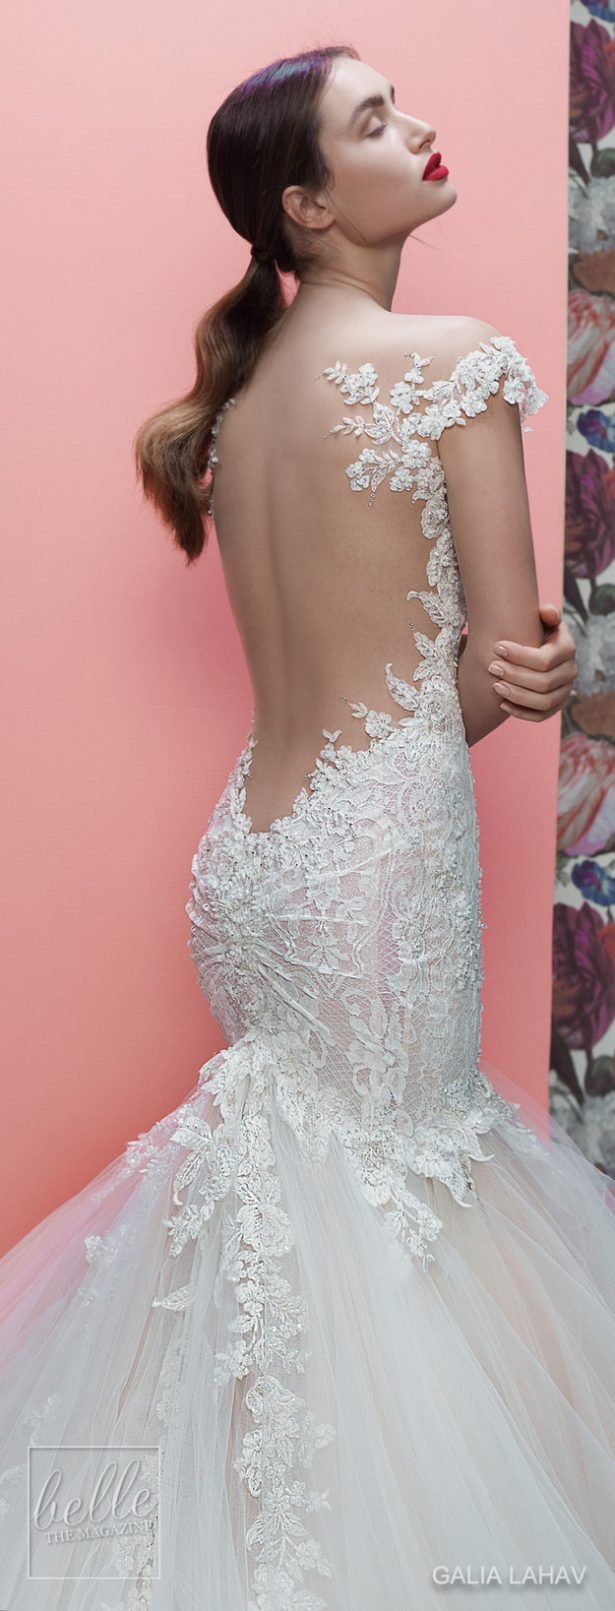 Wedding Dresses By Galia Lahav Couture Bridal Spring 2019 Collection- Queen of Hearts - Allegra